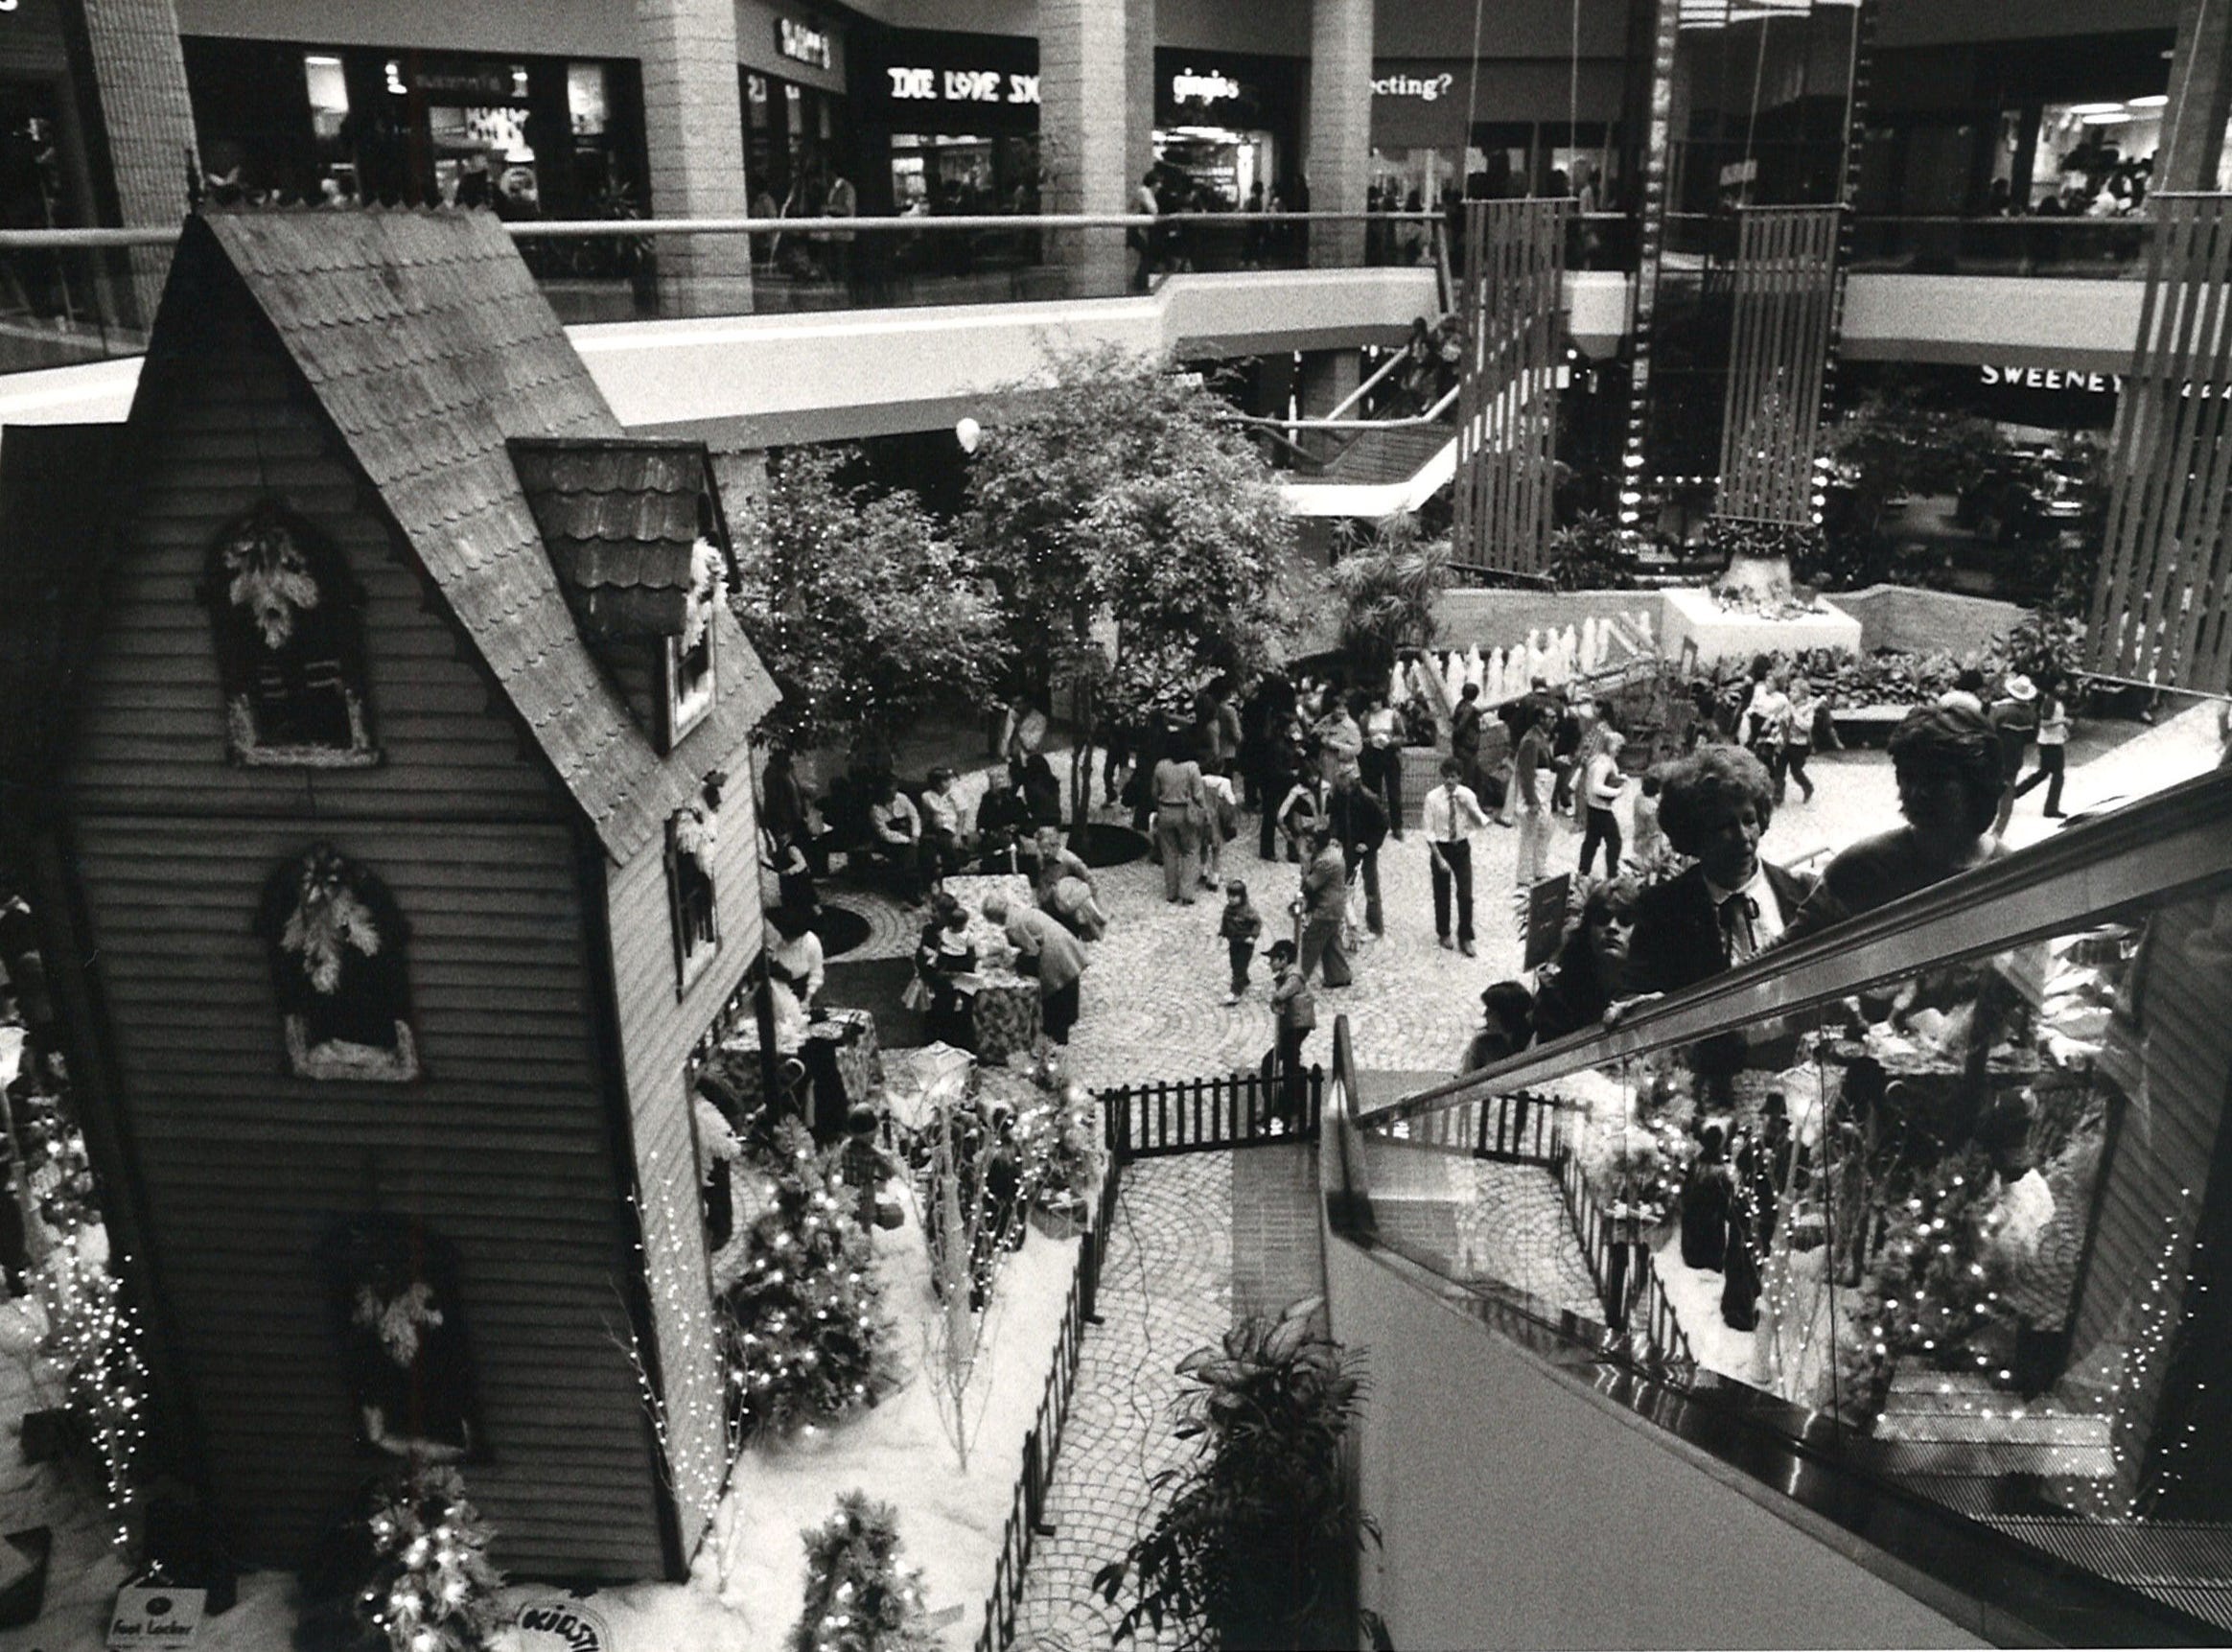 Shoppers at Sunrise Mall on Nov. 26, 1982.